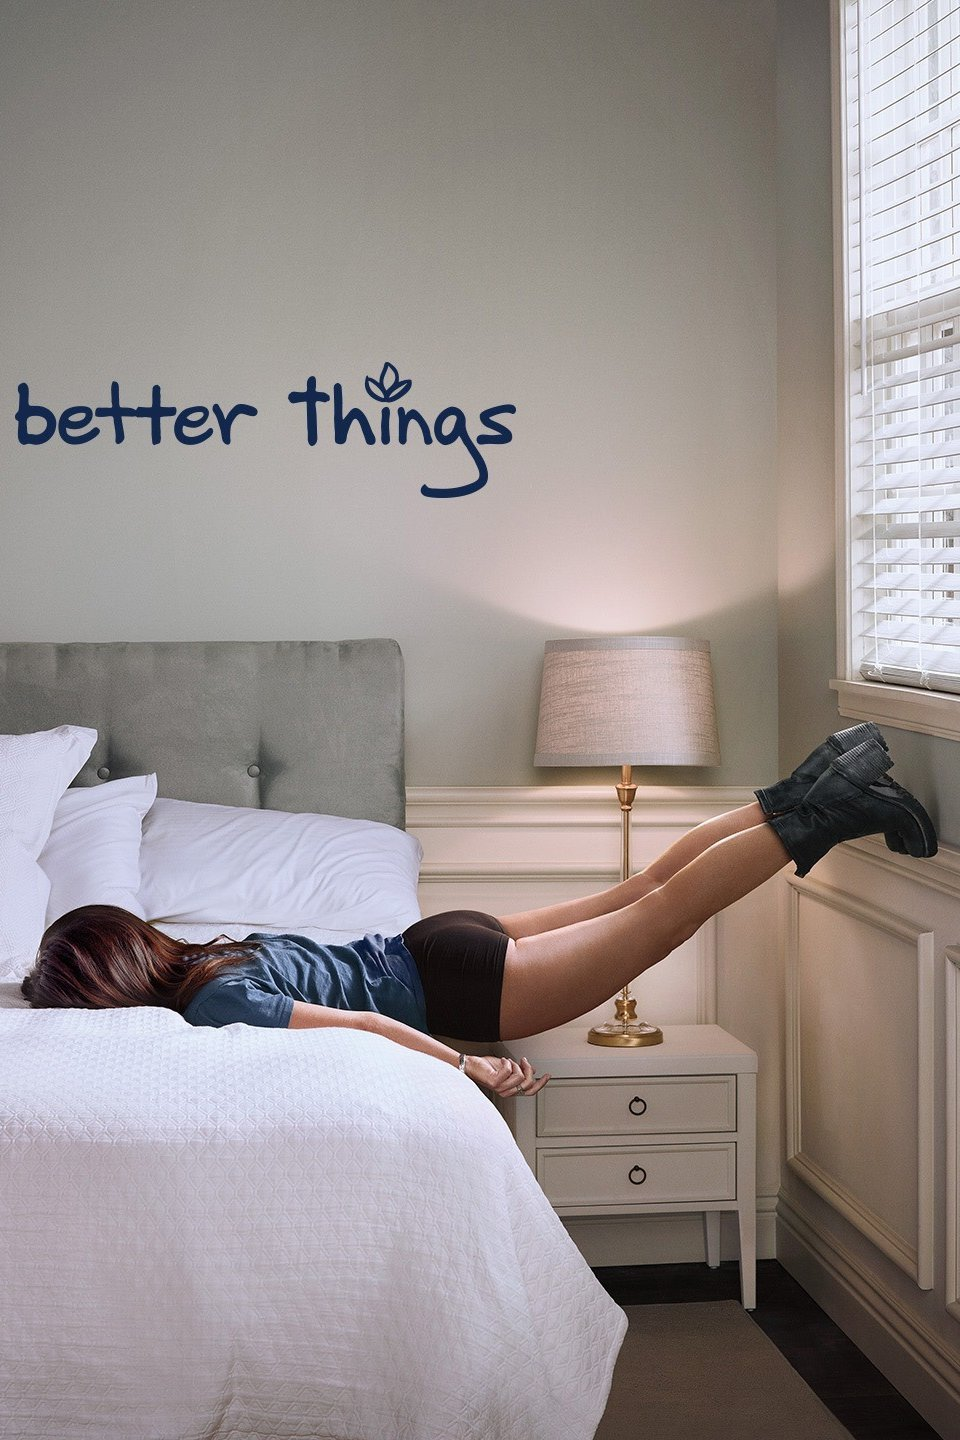 Capitulos de: Better Things